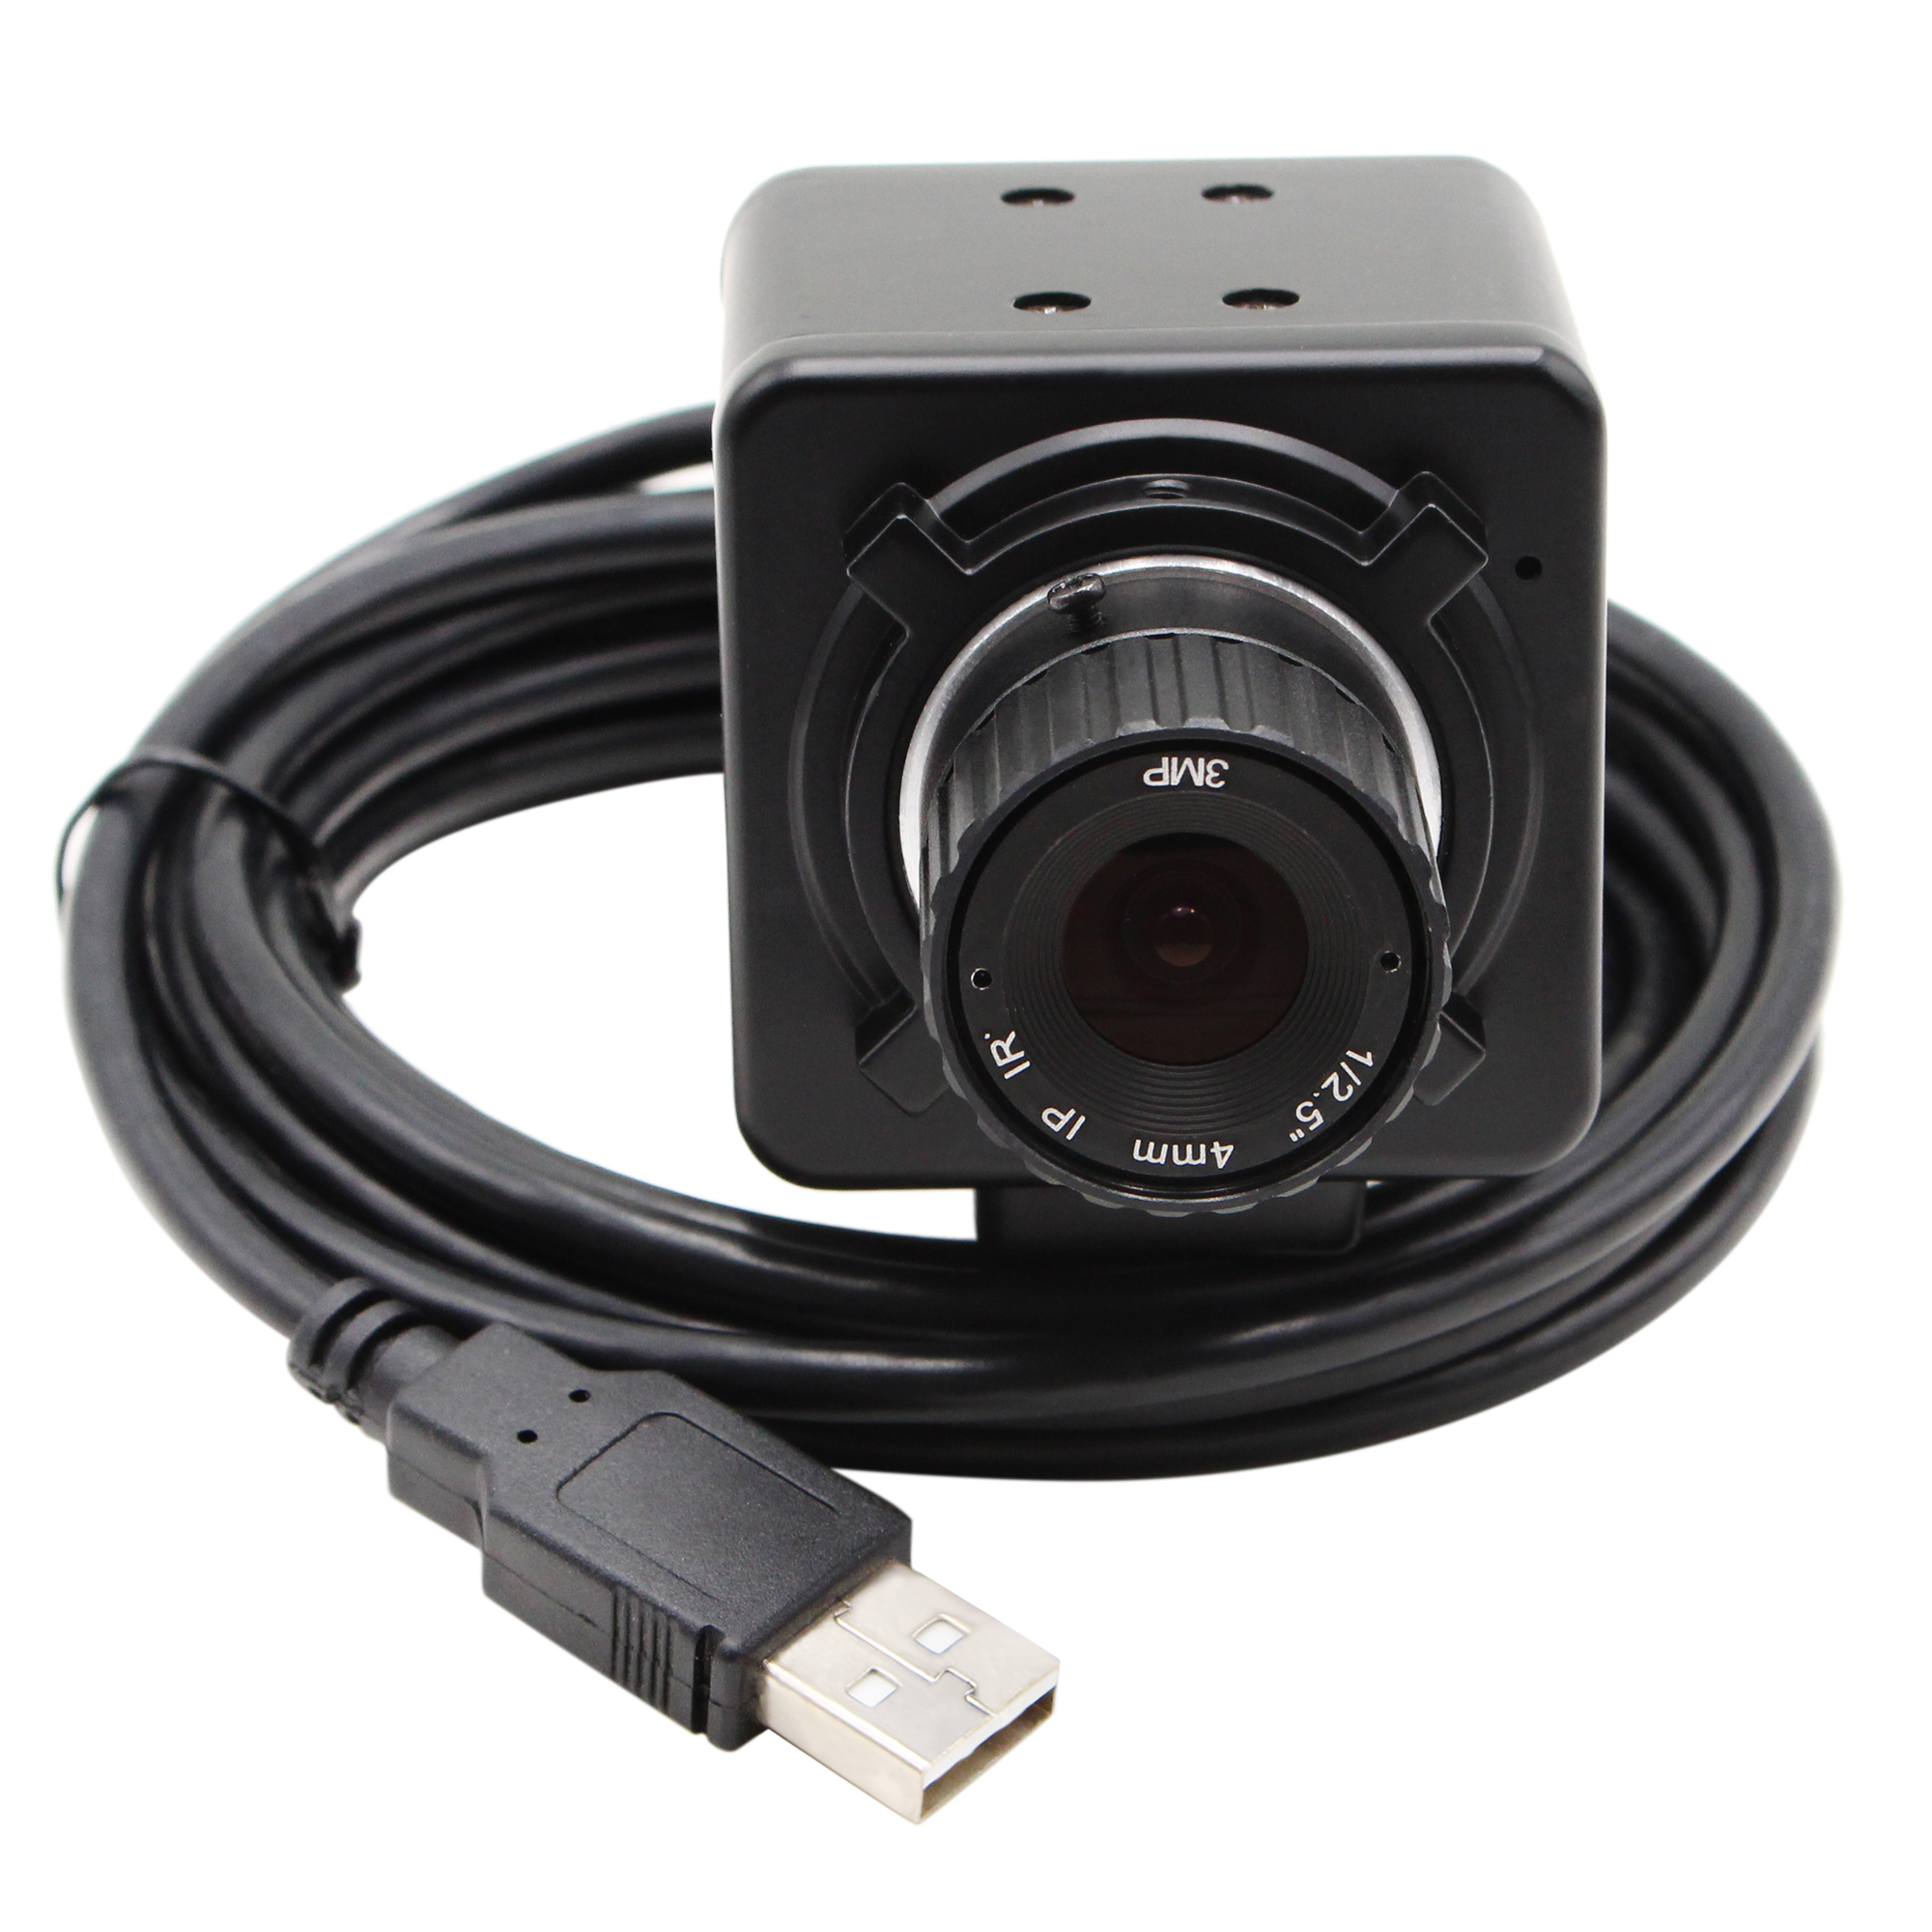 720P Global Shutter Monochrome Black White USB Webcam  MJPEG 60fps High Speed USB Camera With CS Lens